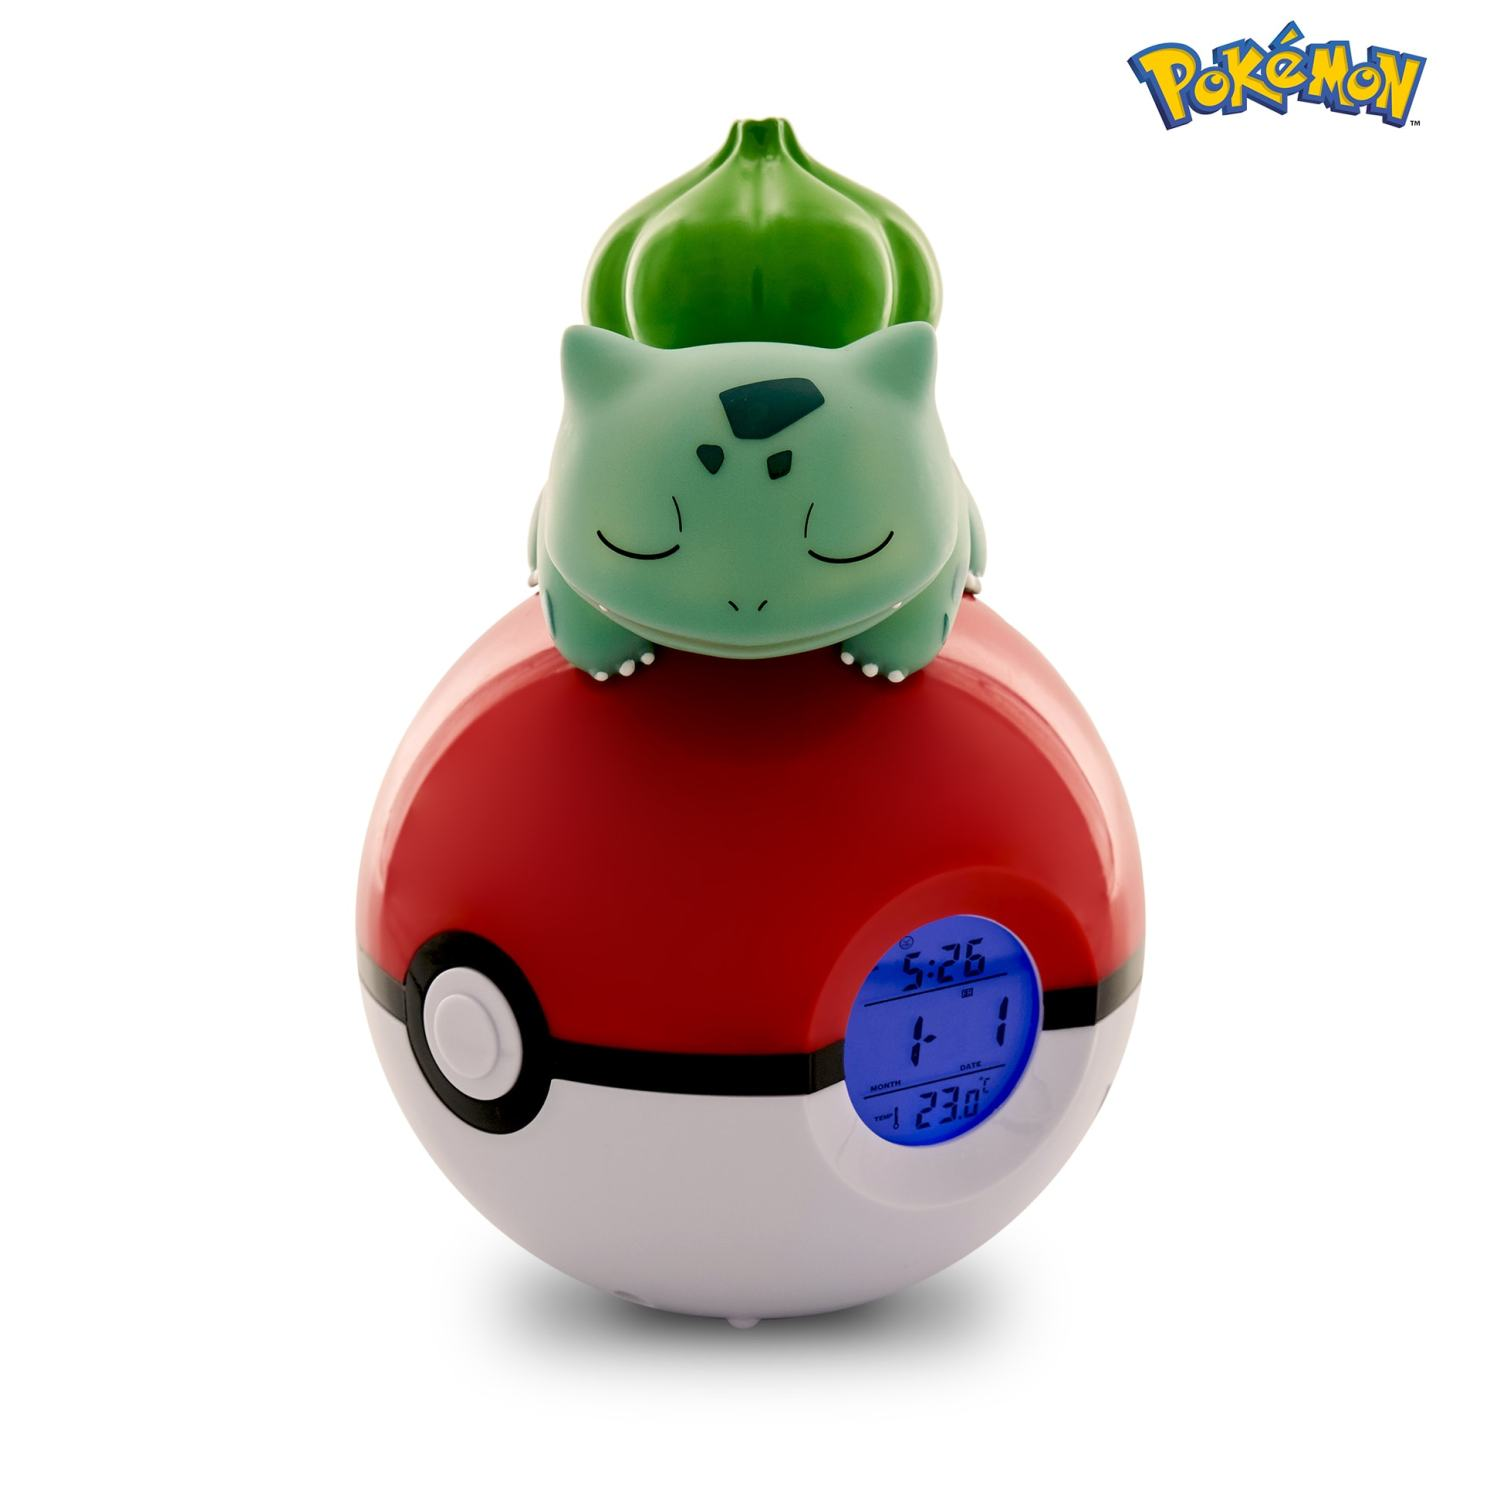 Pokémon Bulbasaur Light-up 3D figure FM Alarm Clock 2